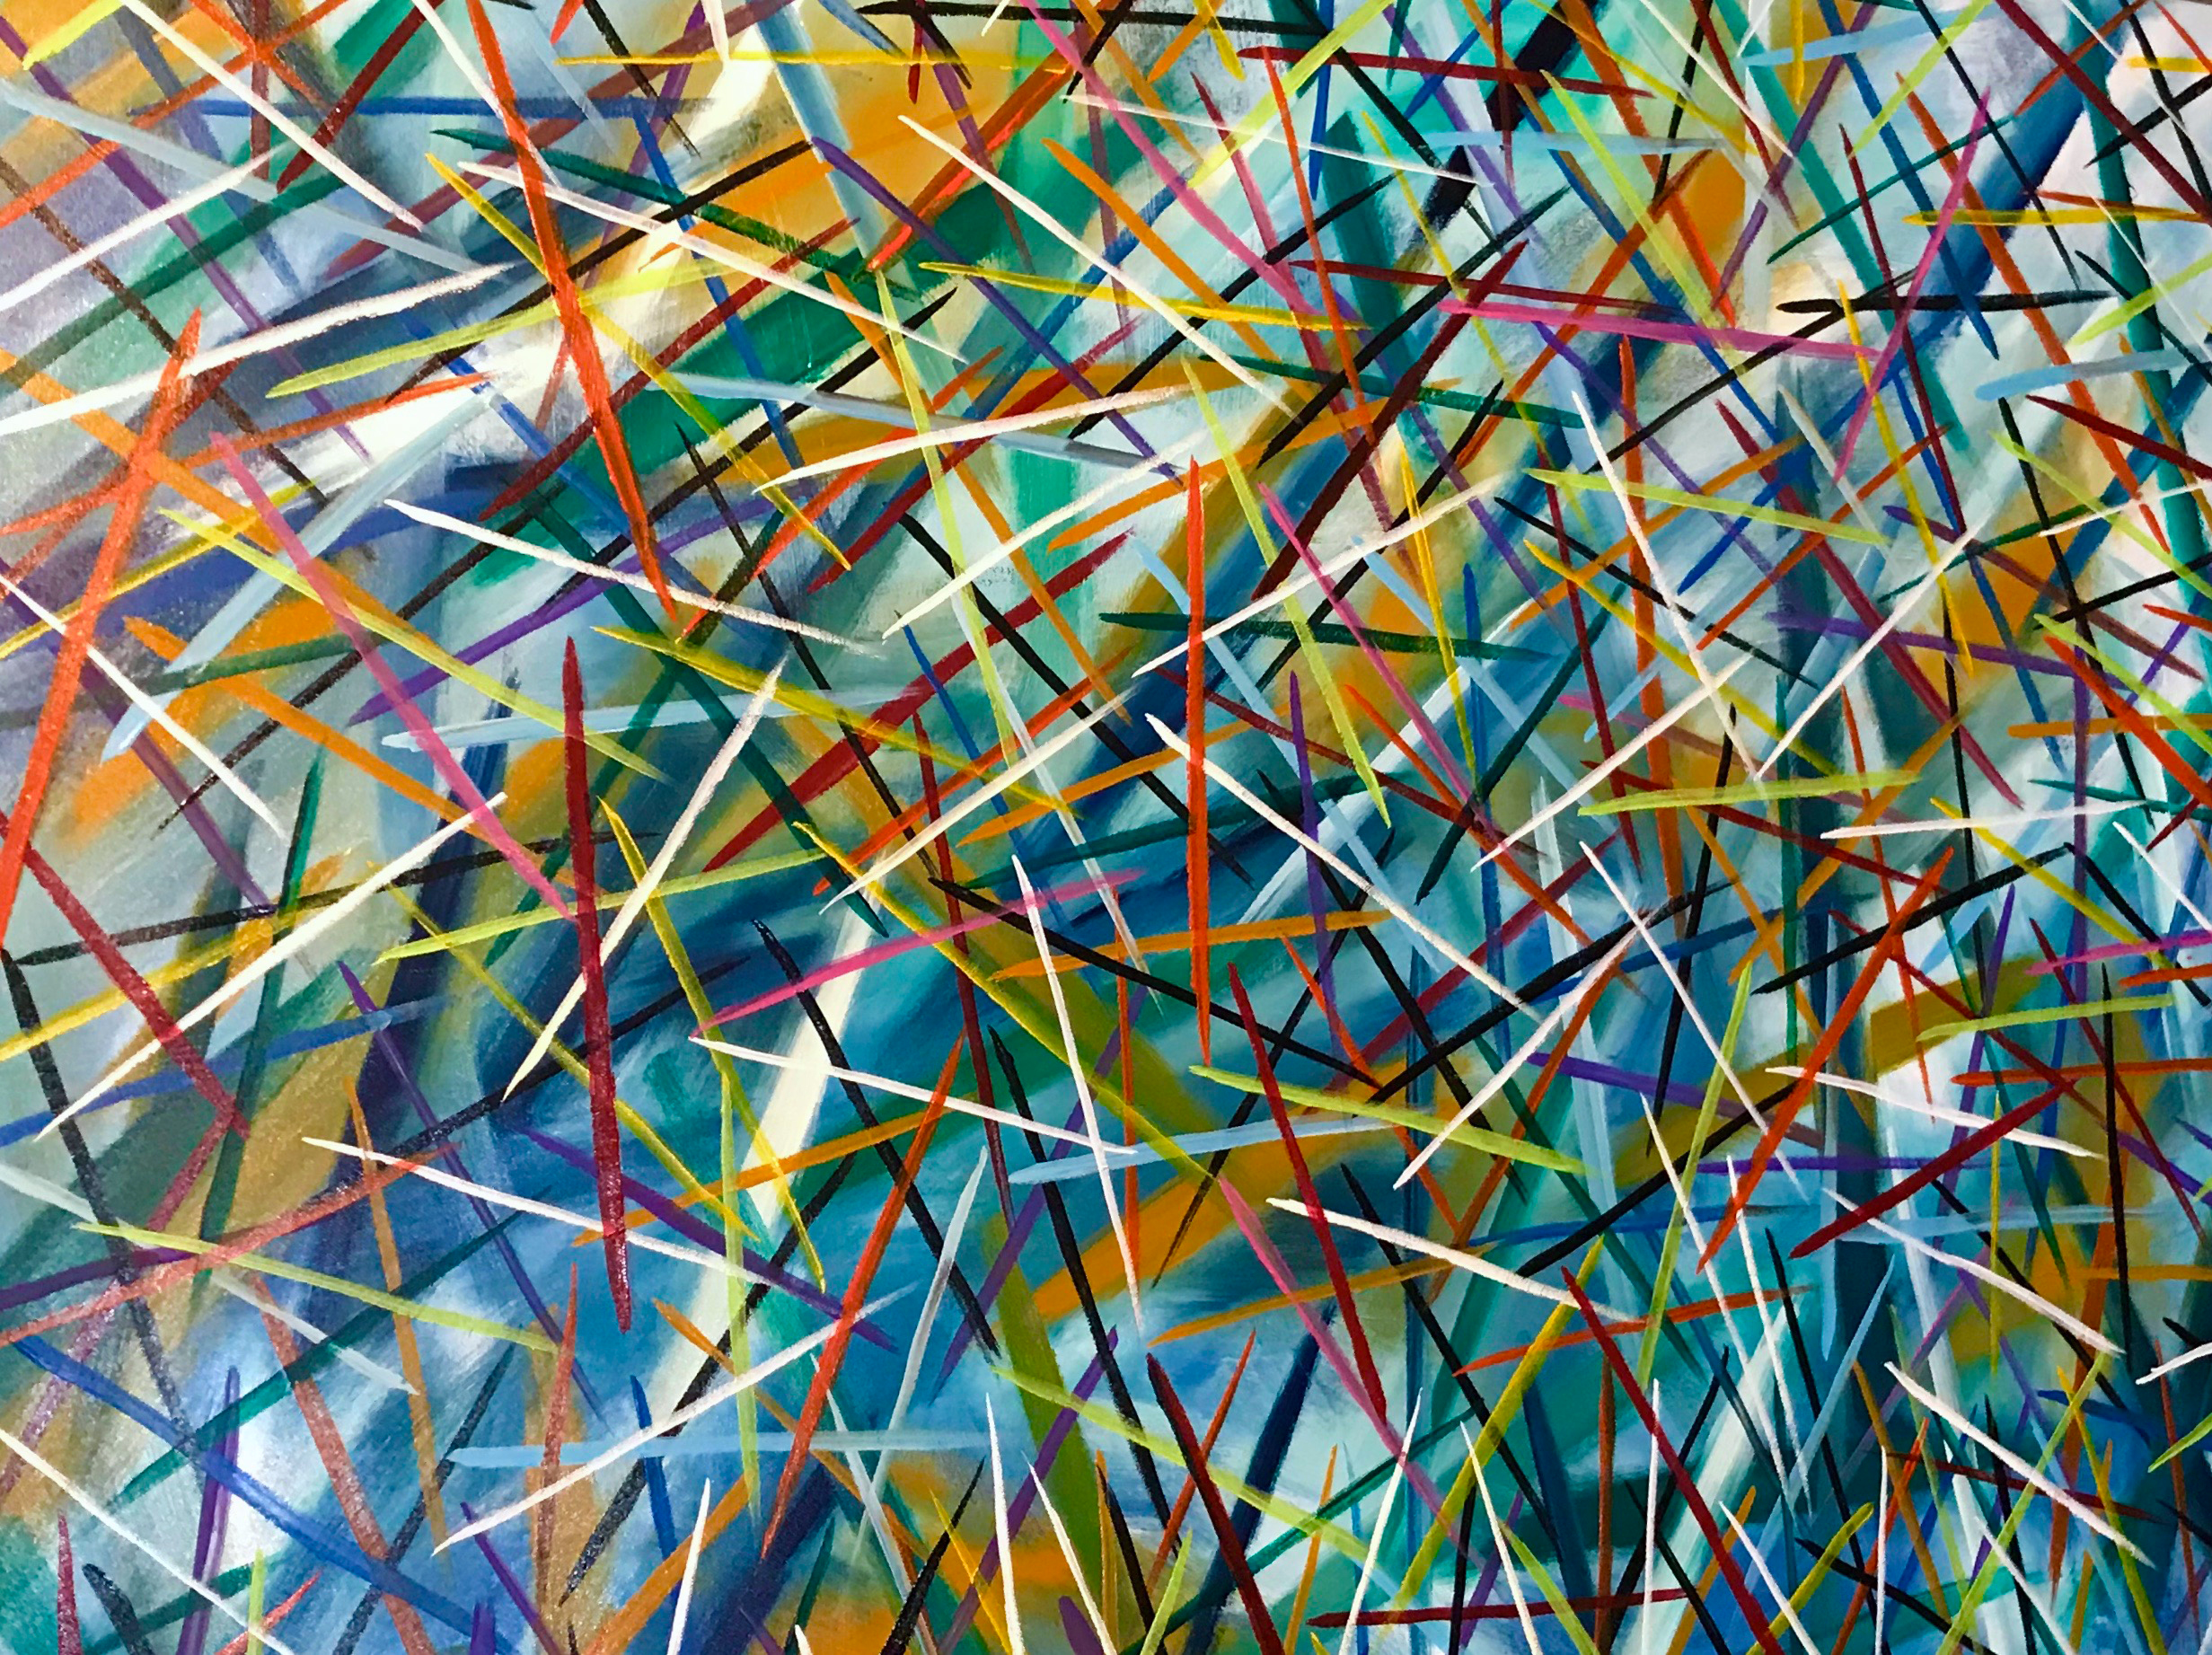 Pick Up Sticks - 201840x48 inchesacrylic on gallery-wrapped canvas